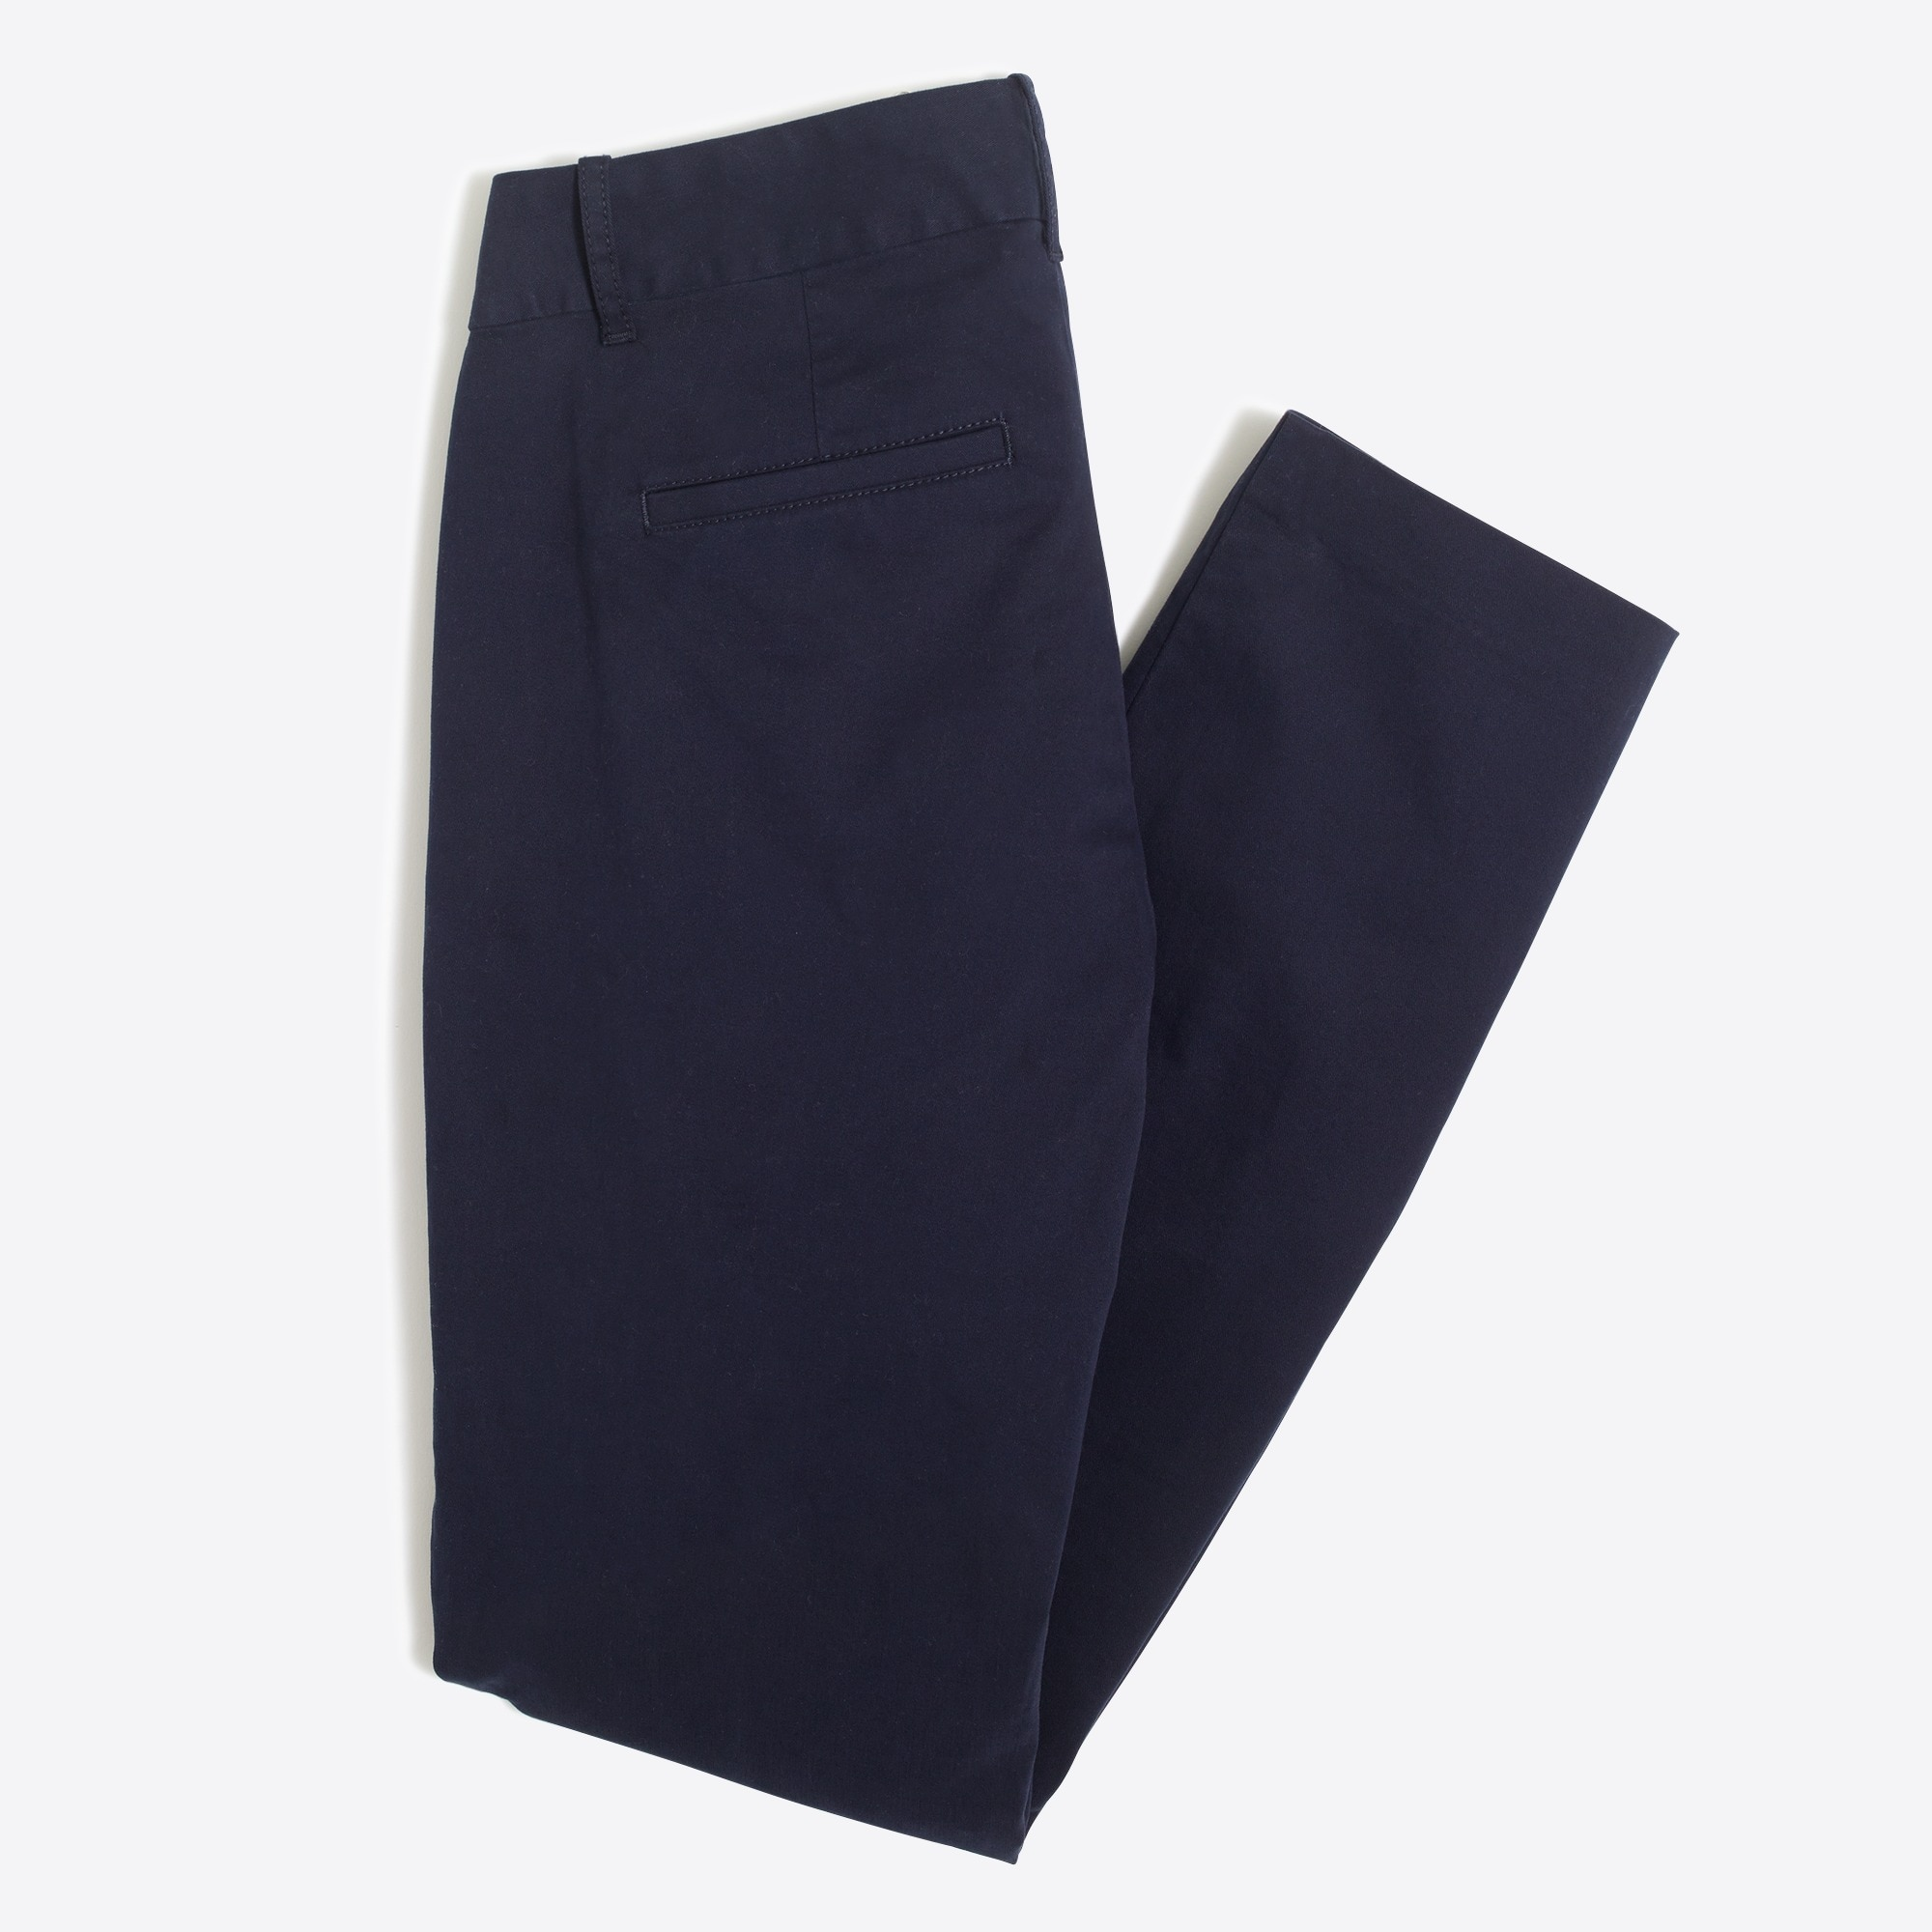 Image 4 for Laney chino pant